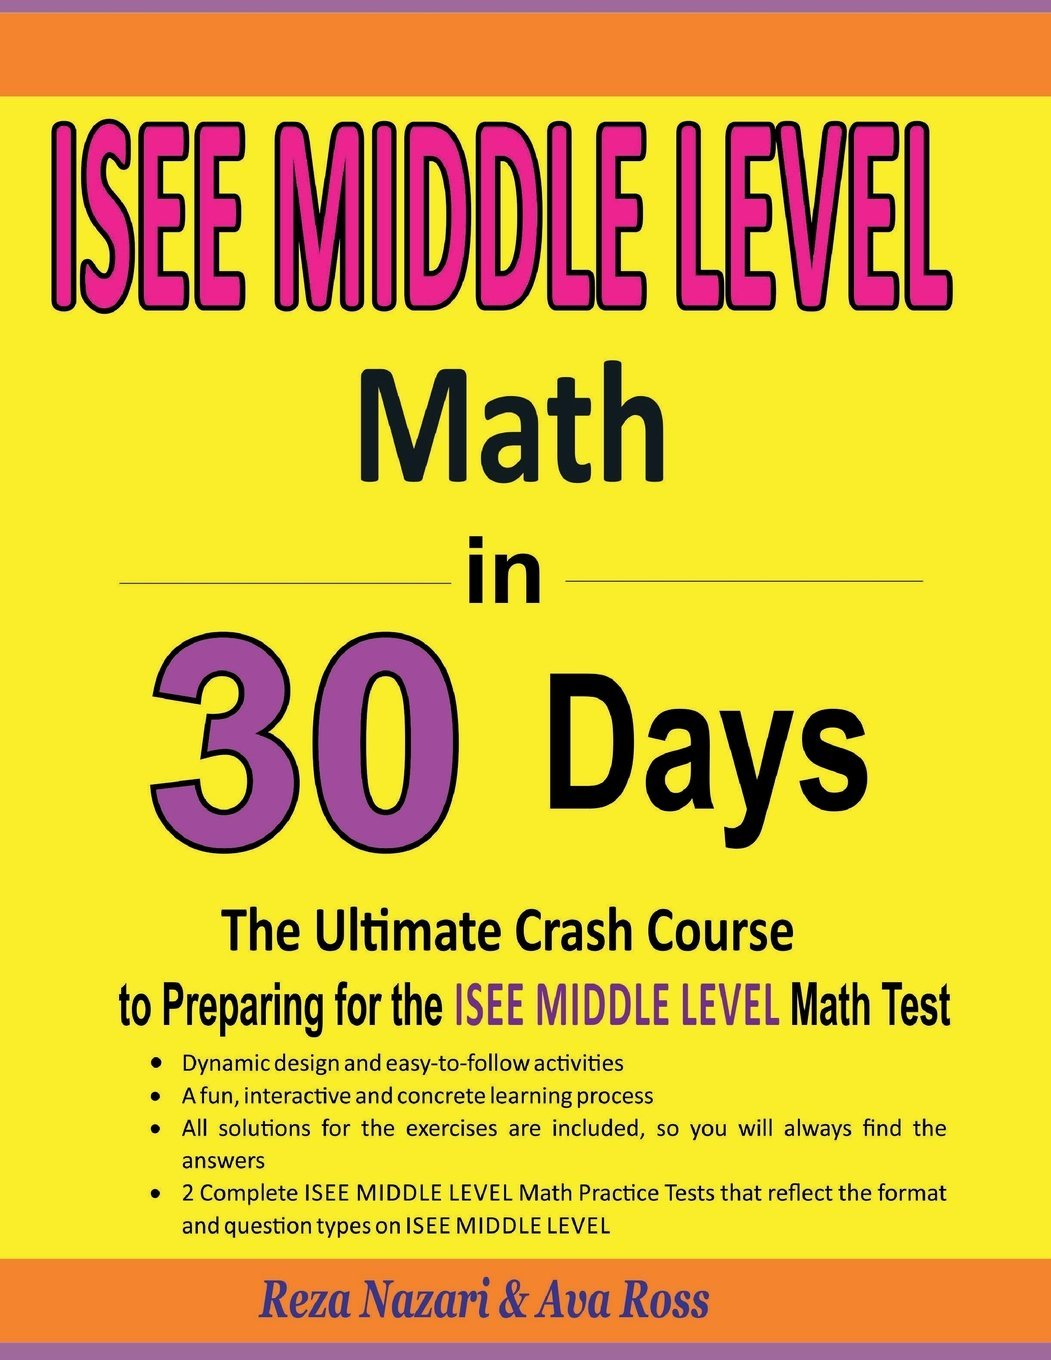 Download ISEE Middle Level Math in 30 Days: The Ultimate Crash Course to Preparing for the ISEE Middle Level Math Test pdf